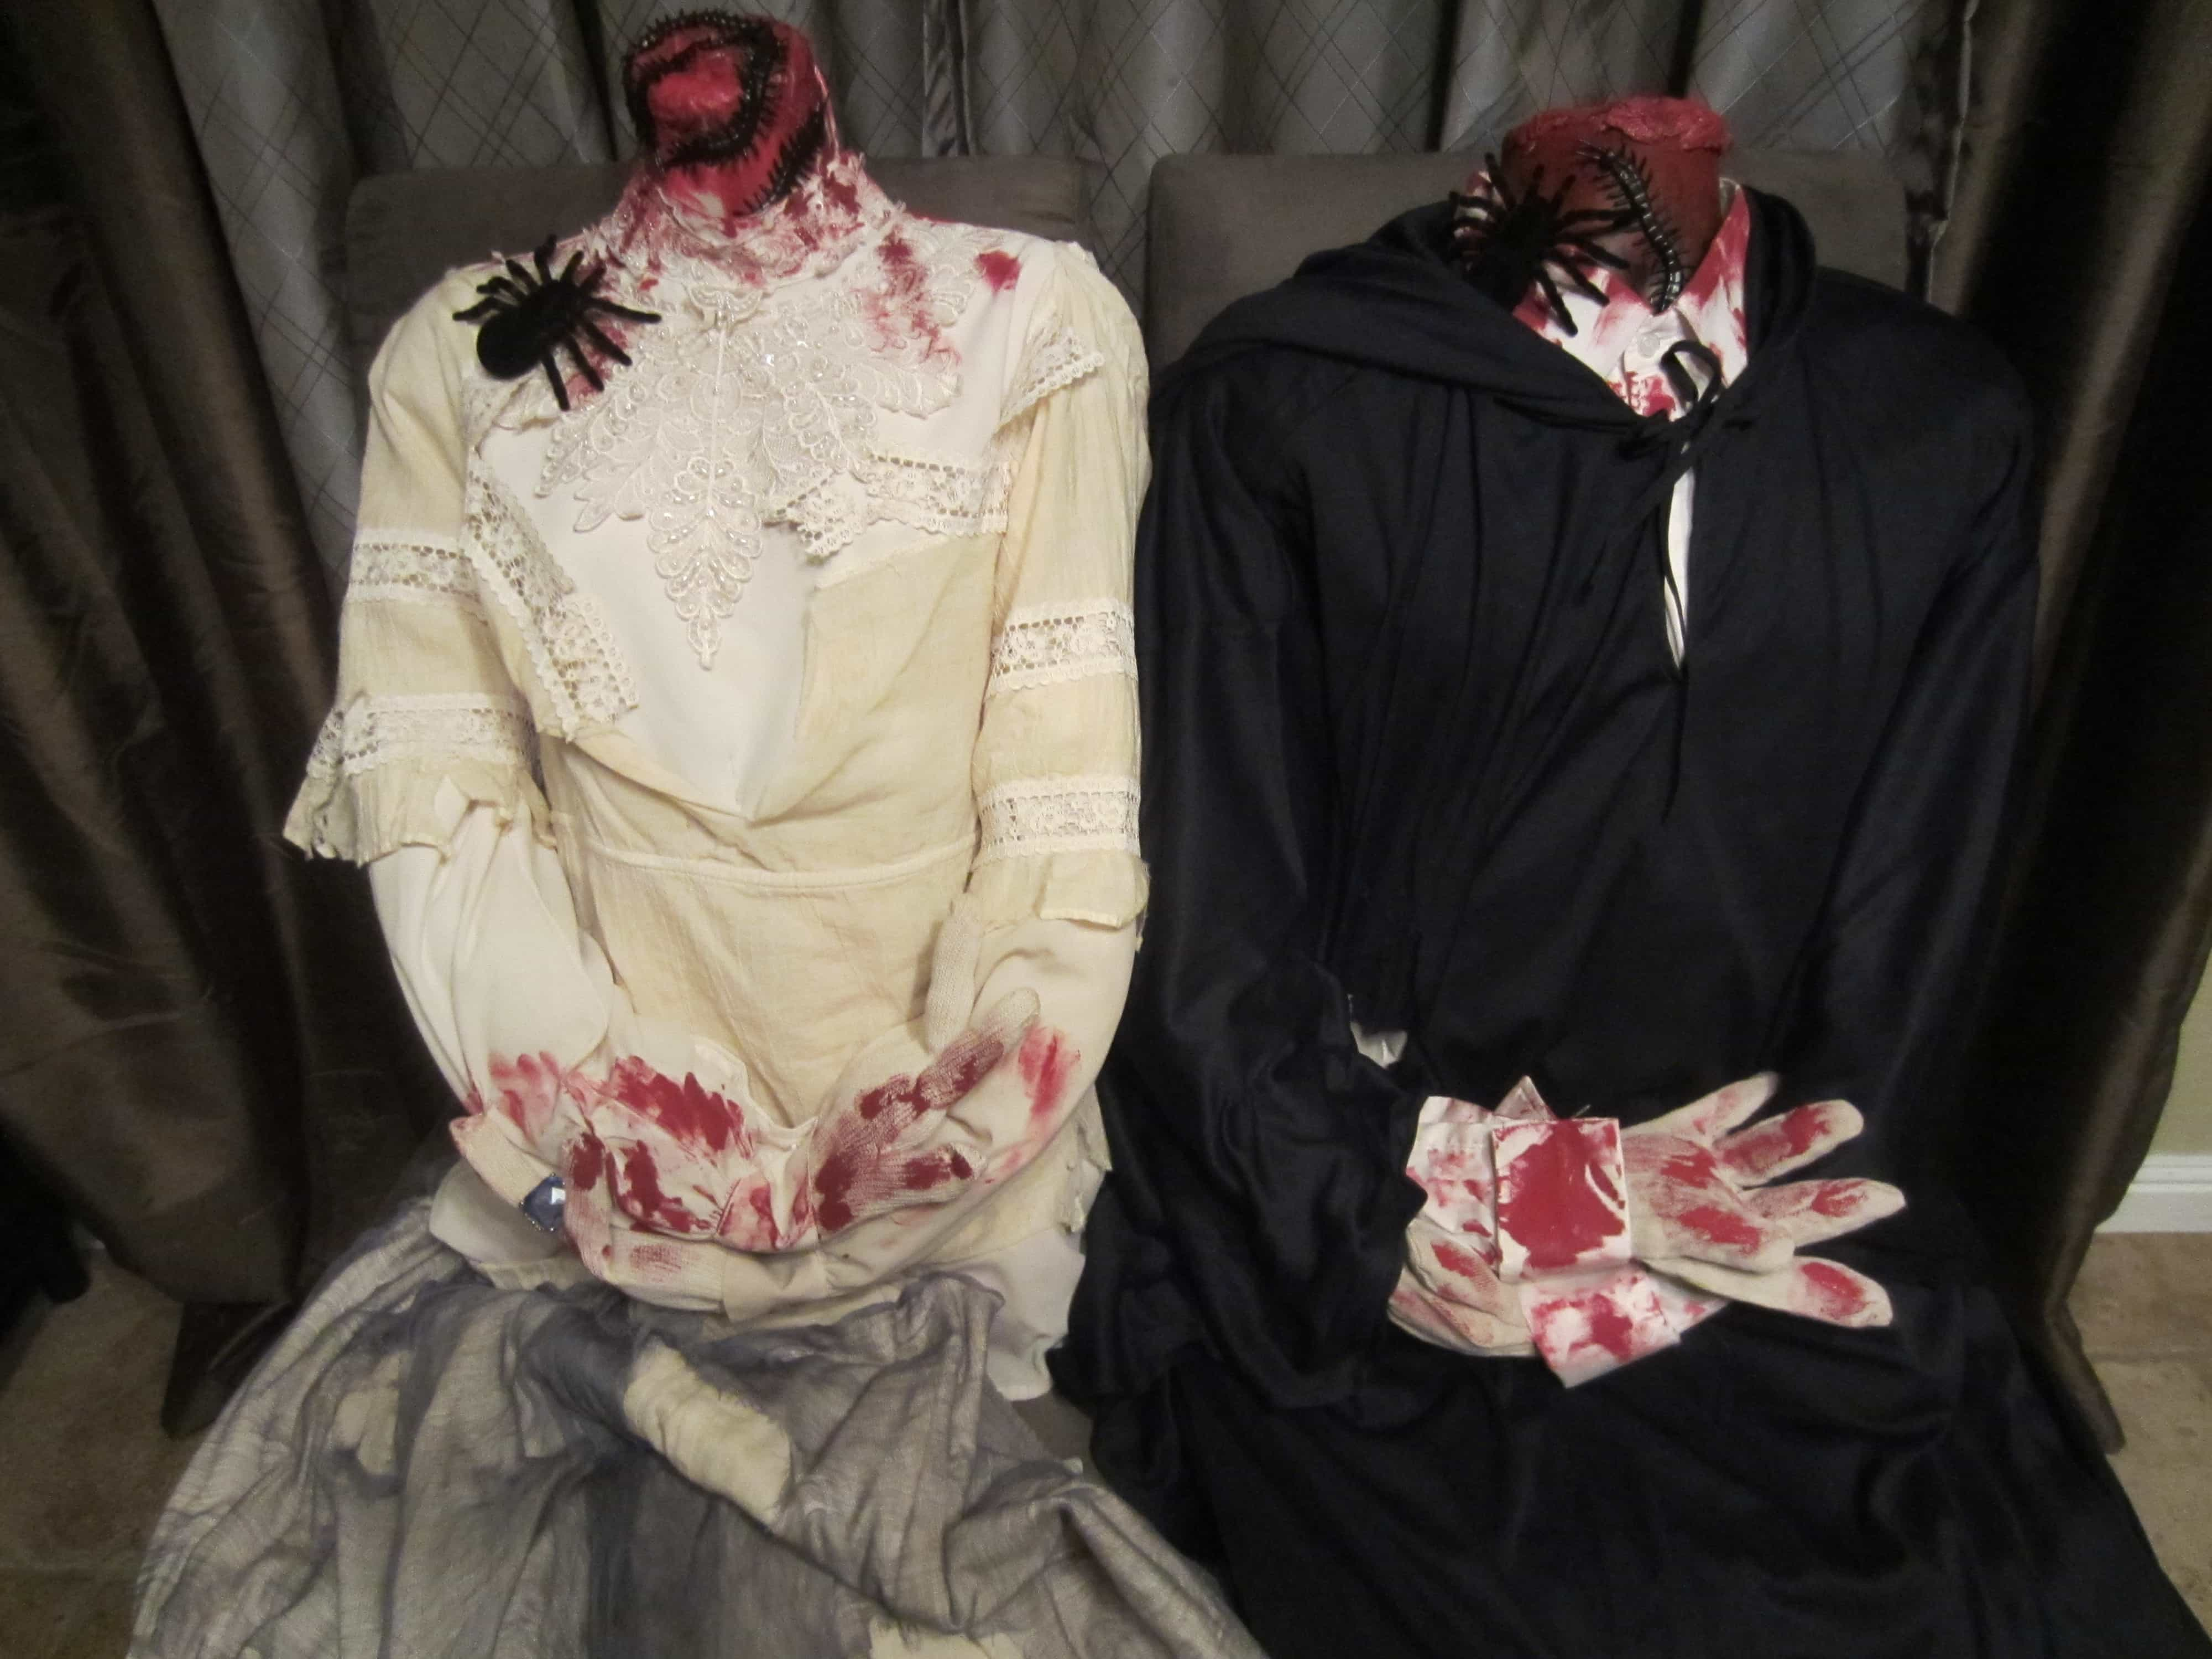 Headless Man and Headless Woman Costumes